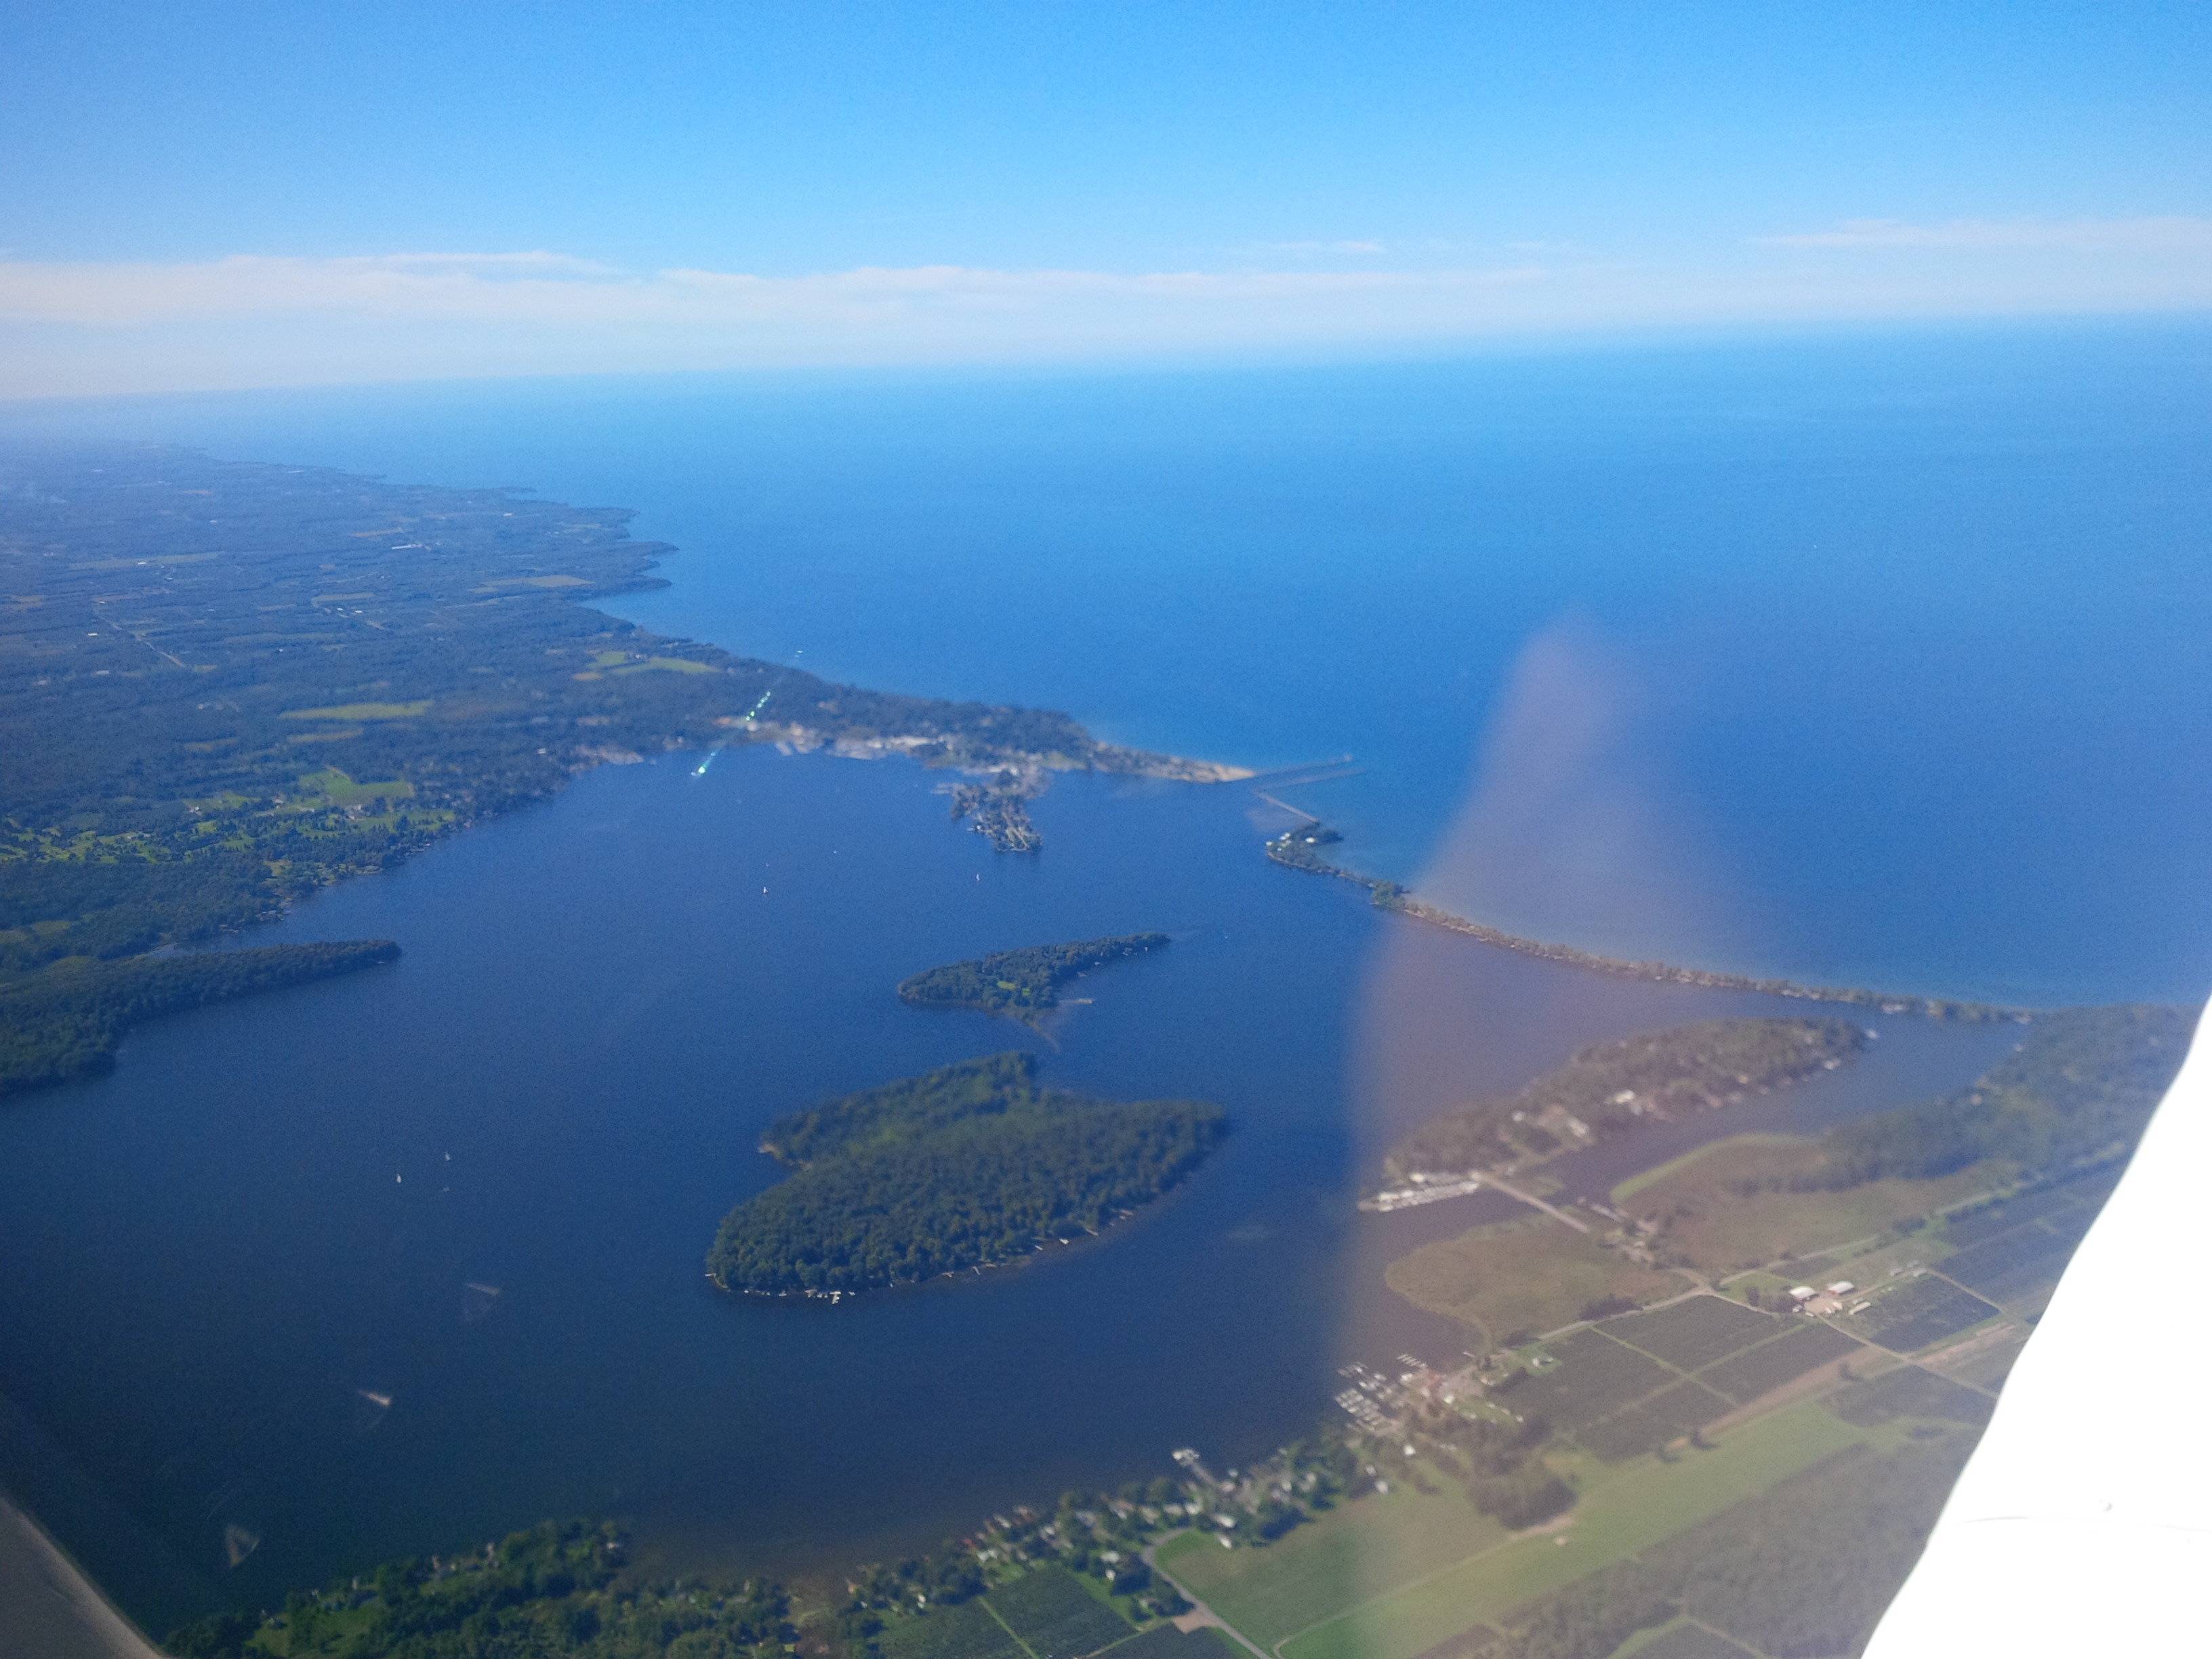 Lake Ontario and Sodus Bay